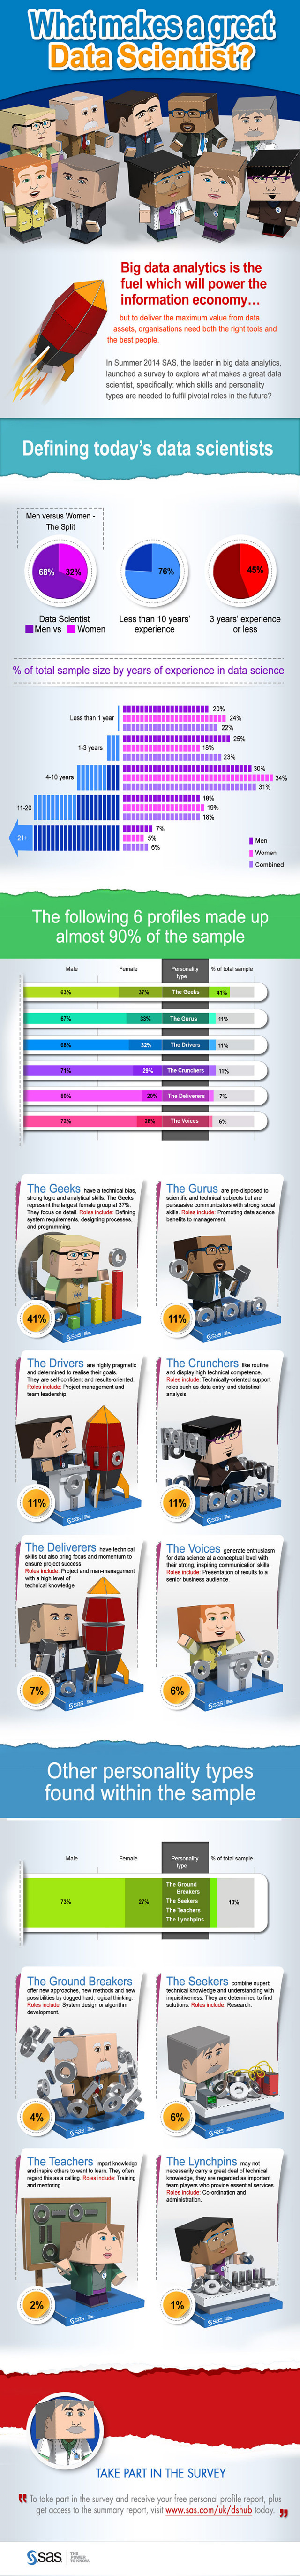 SAS_Data_Scientist_InfoGraphic_2014_